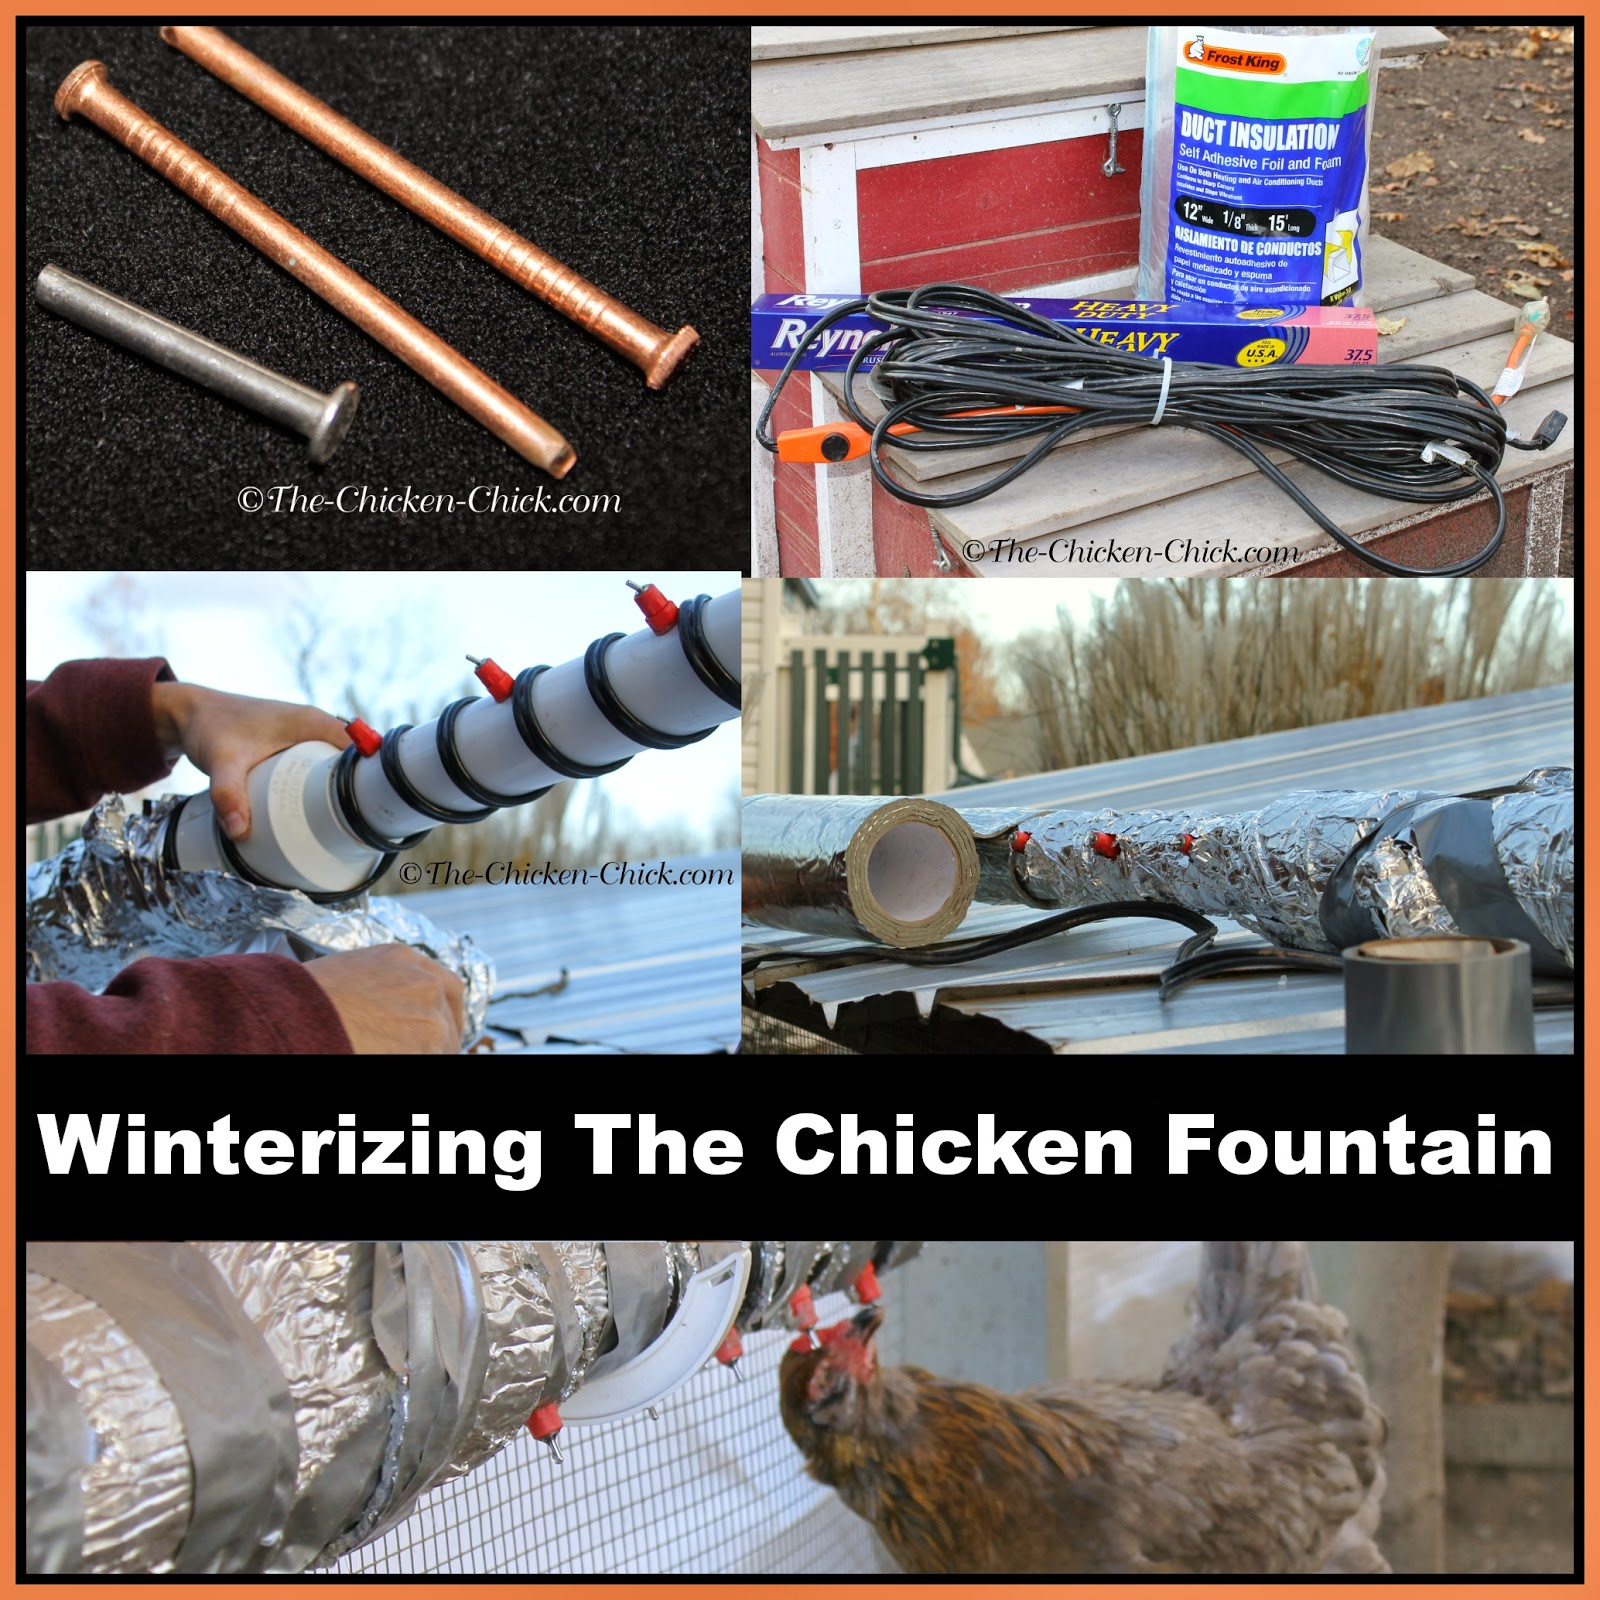 Winterizing The Chicken Fountain instructions